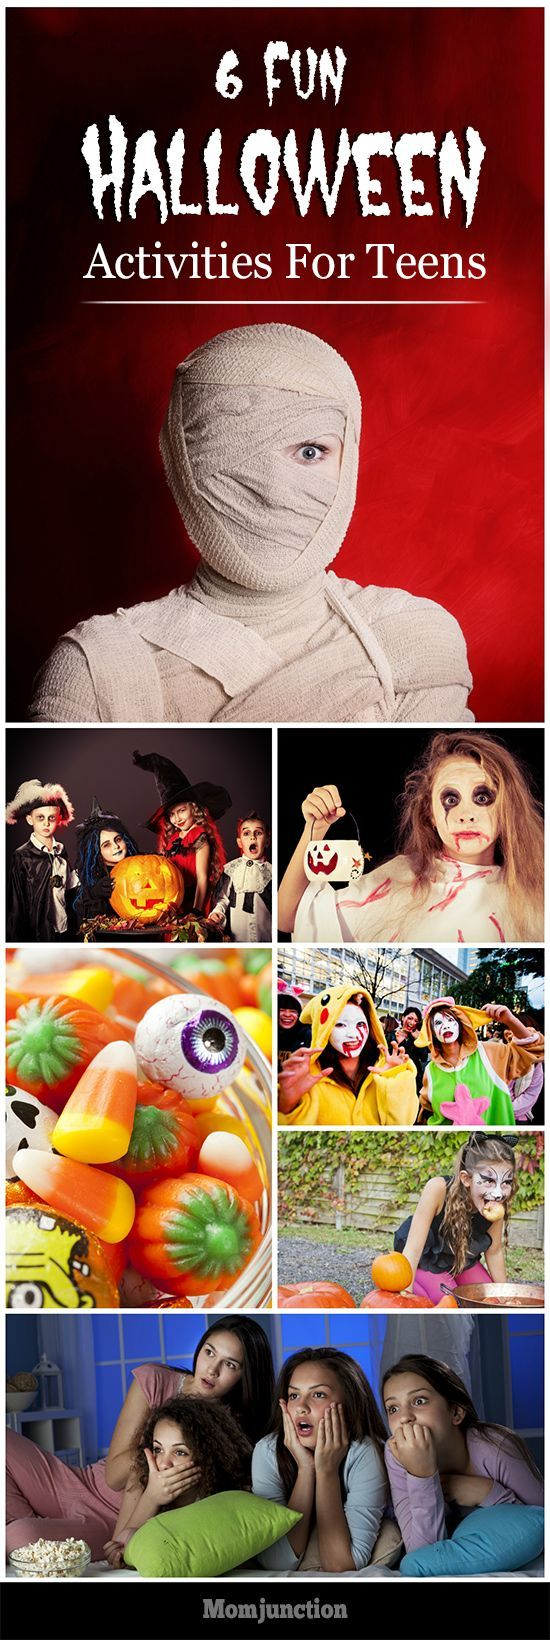 270 best images about on Pinterest | Cute halloween ...